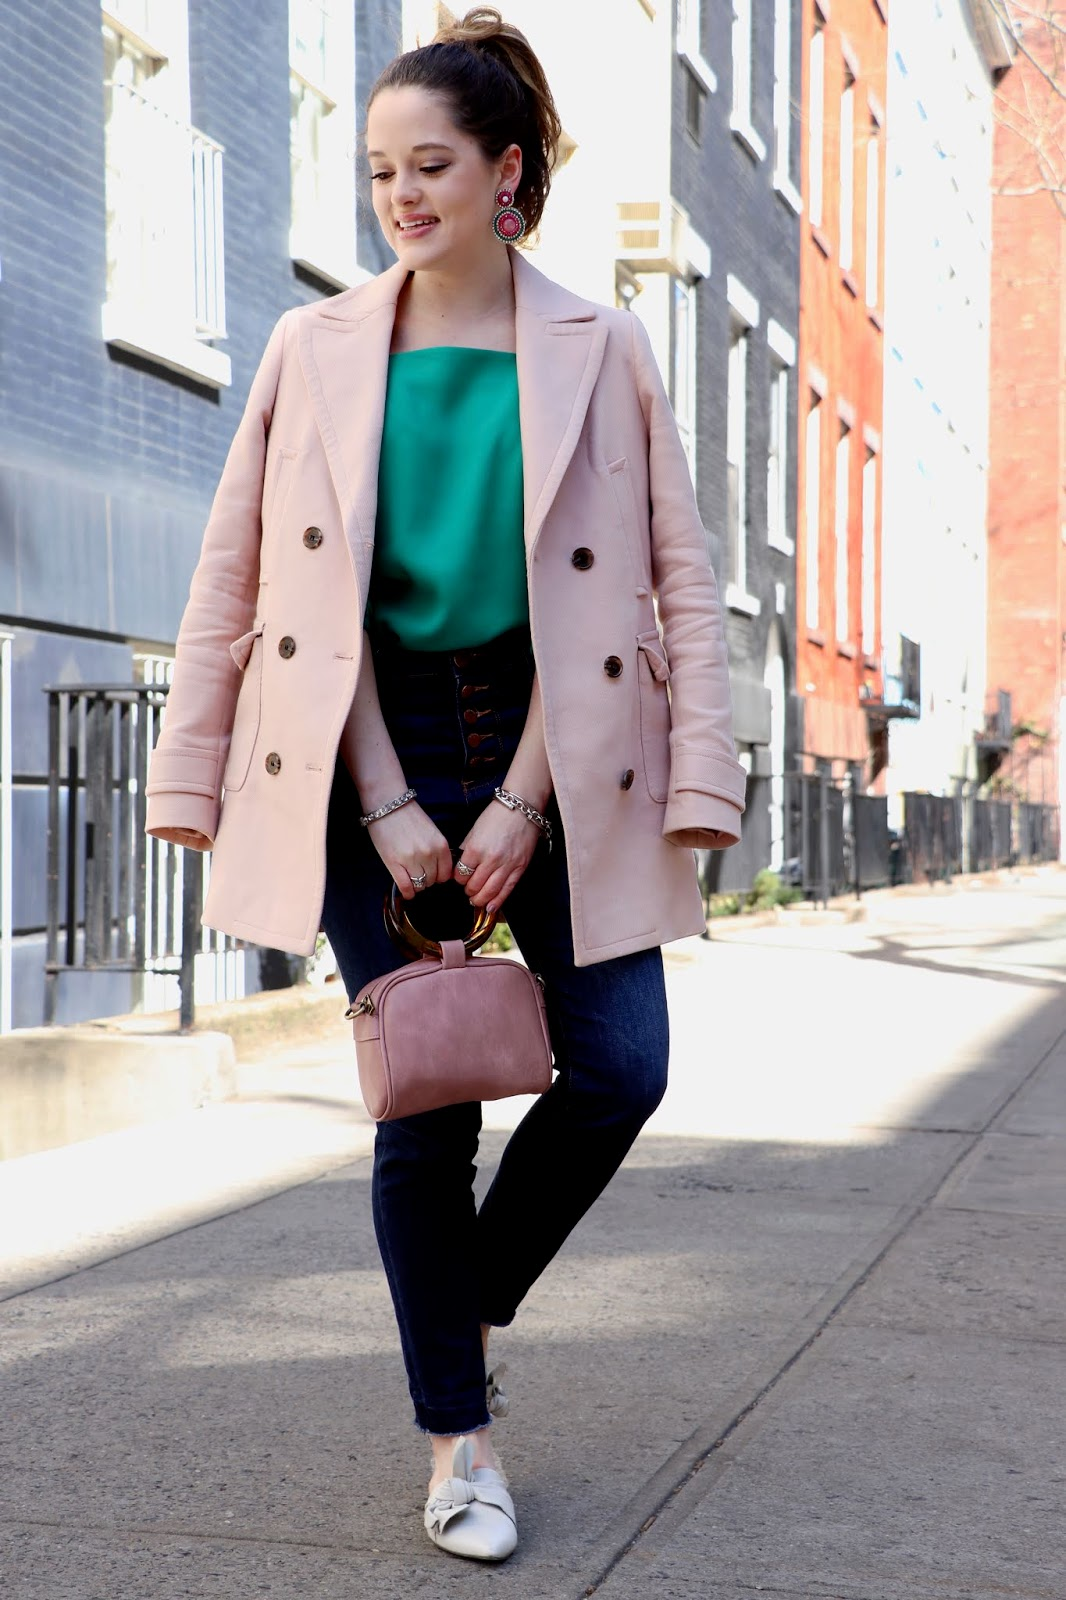 Nyc fashion blogger Kathleen Harper's spring street style in soho